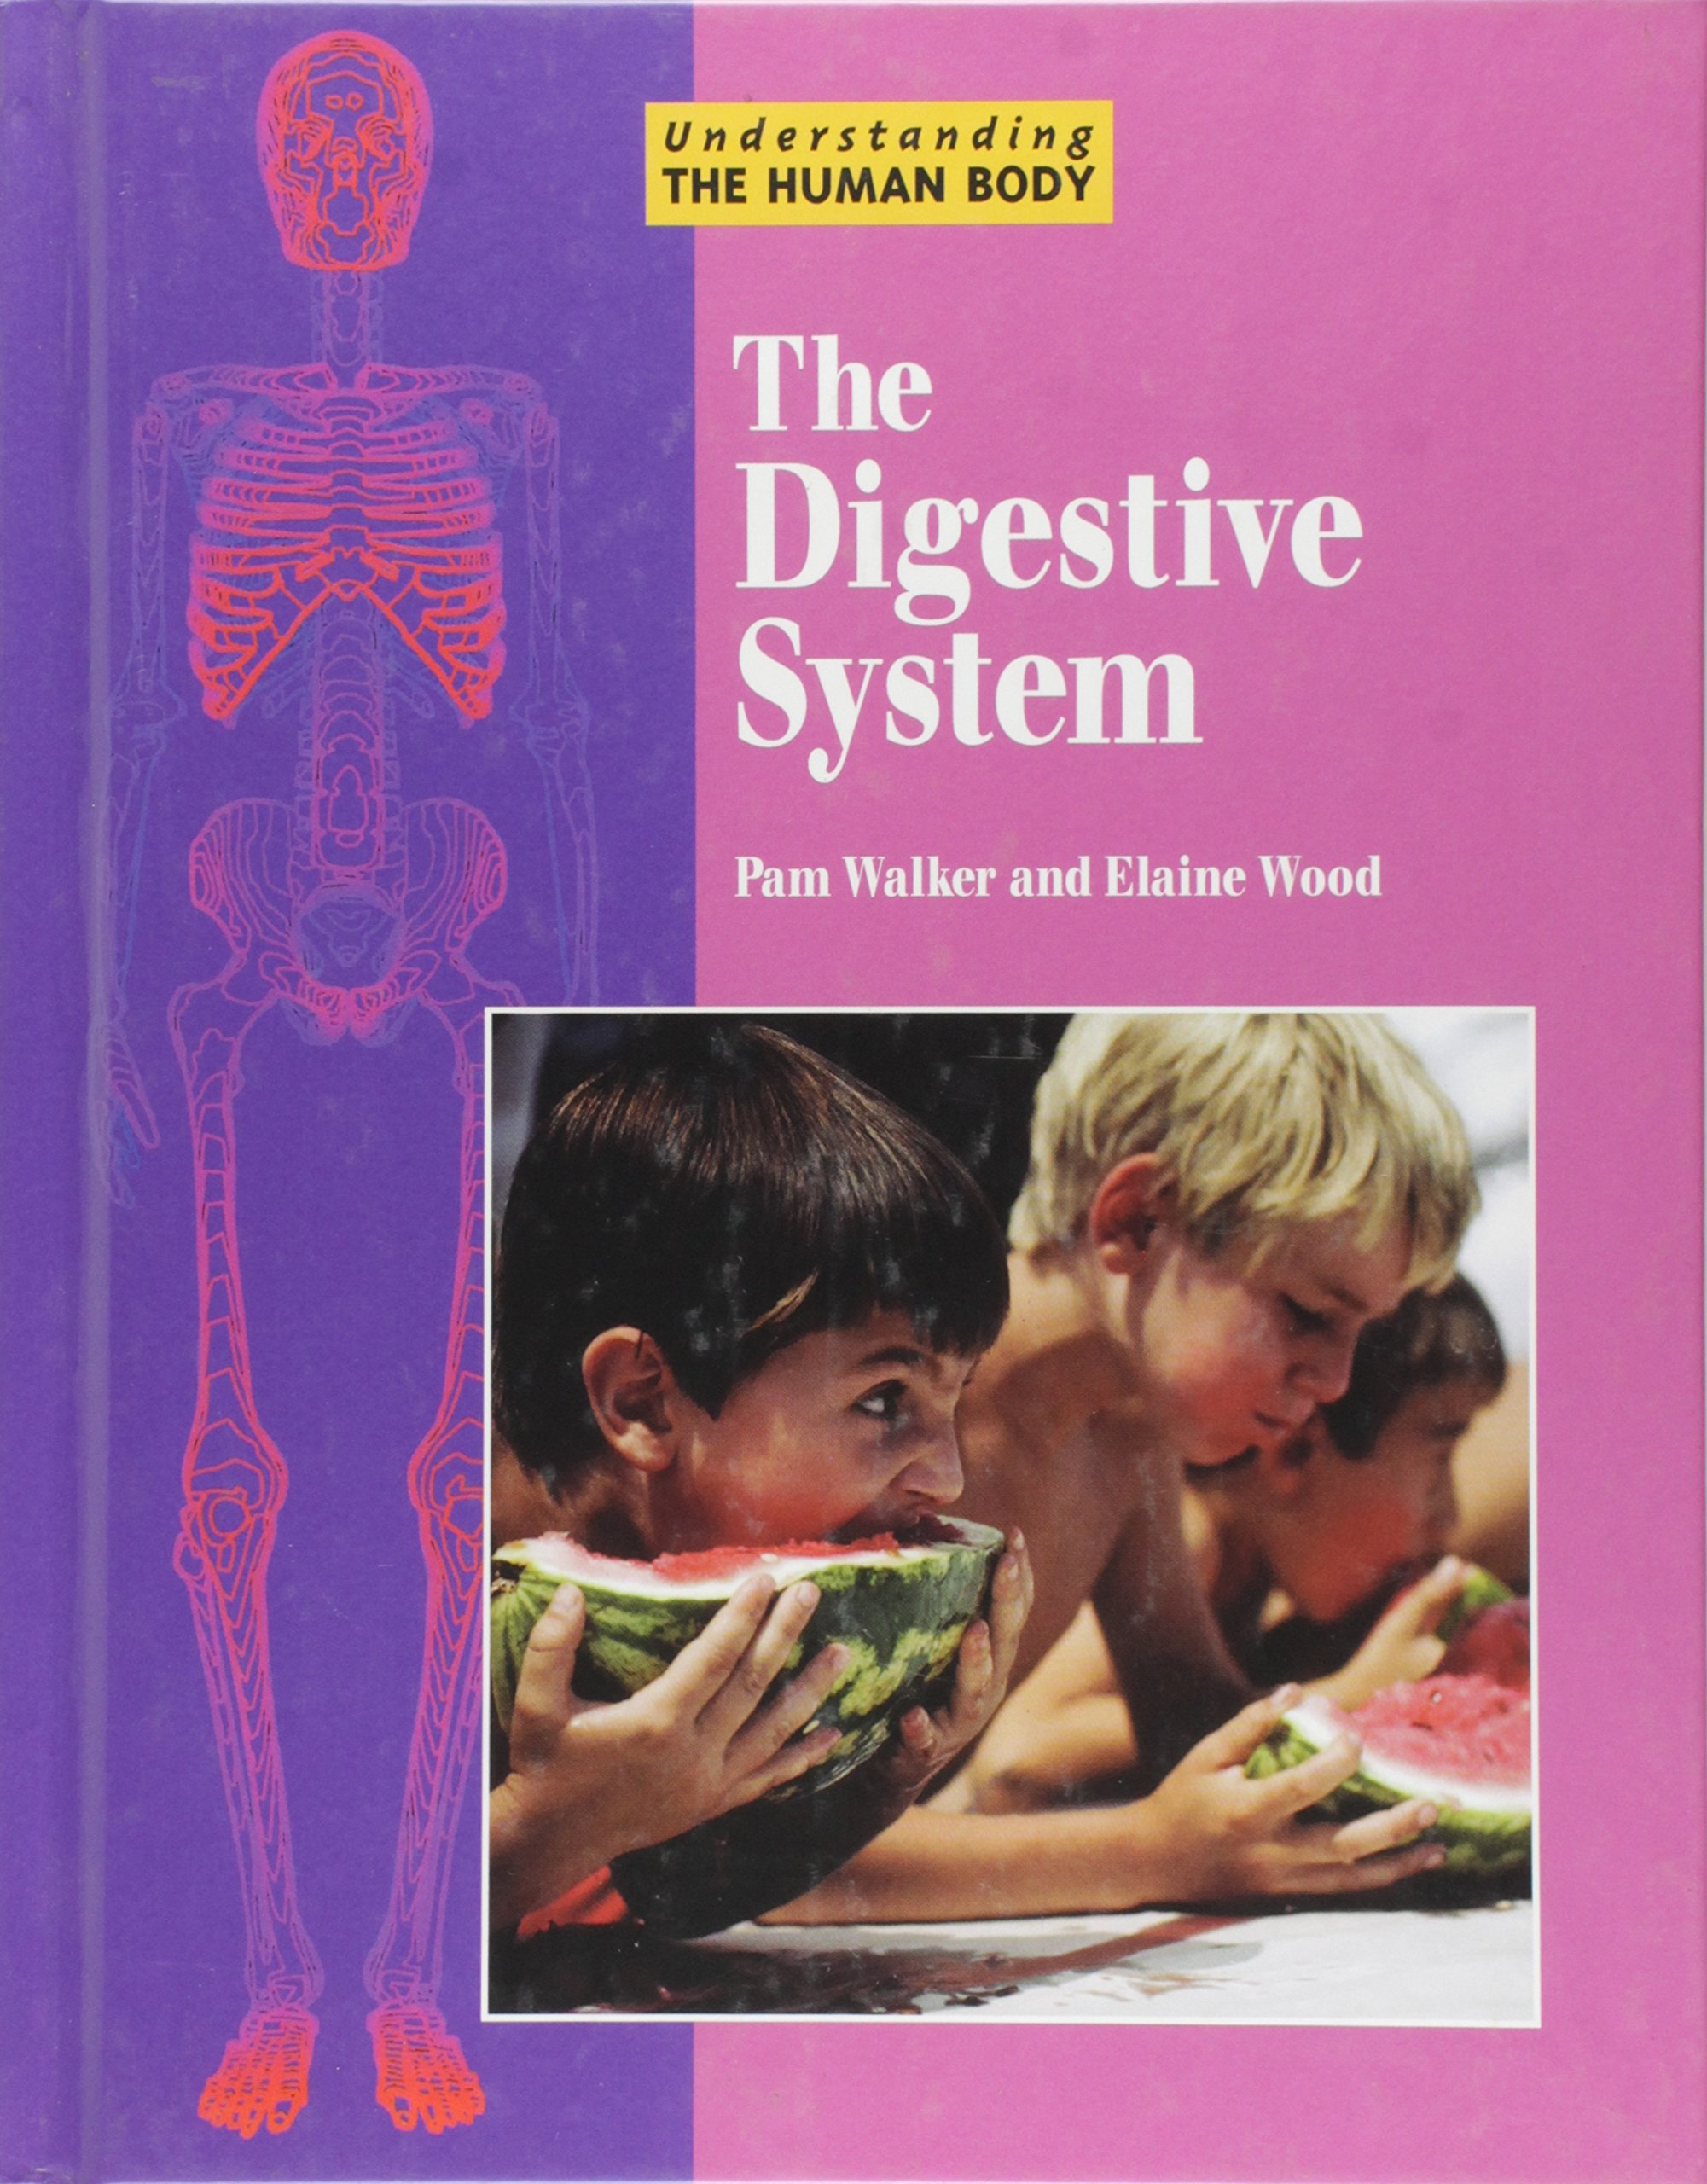 Download Understanding the Human Body - The Digestive System ebook